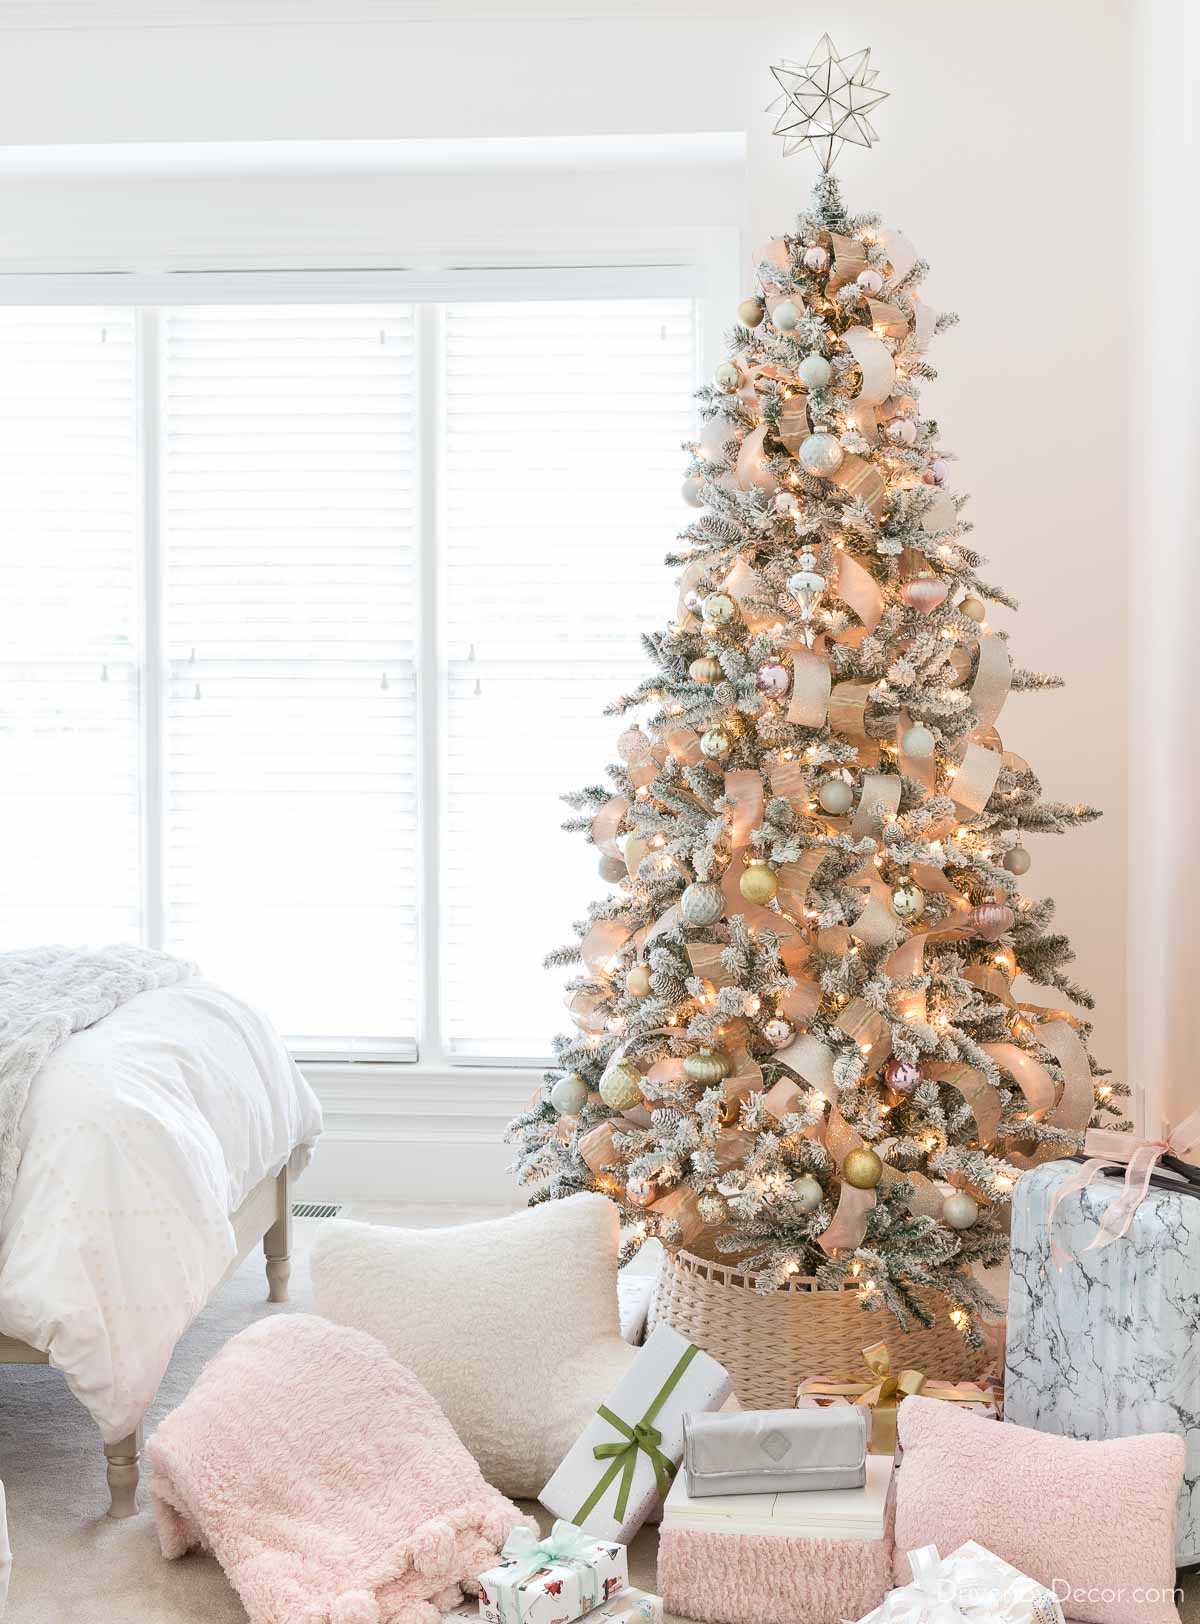 Gorgeous inexpensive artificial Christmas tree!